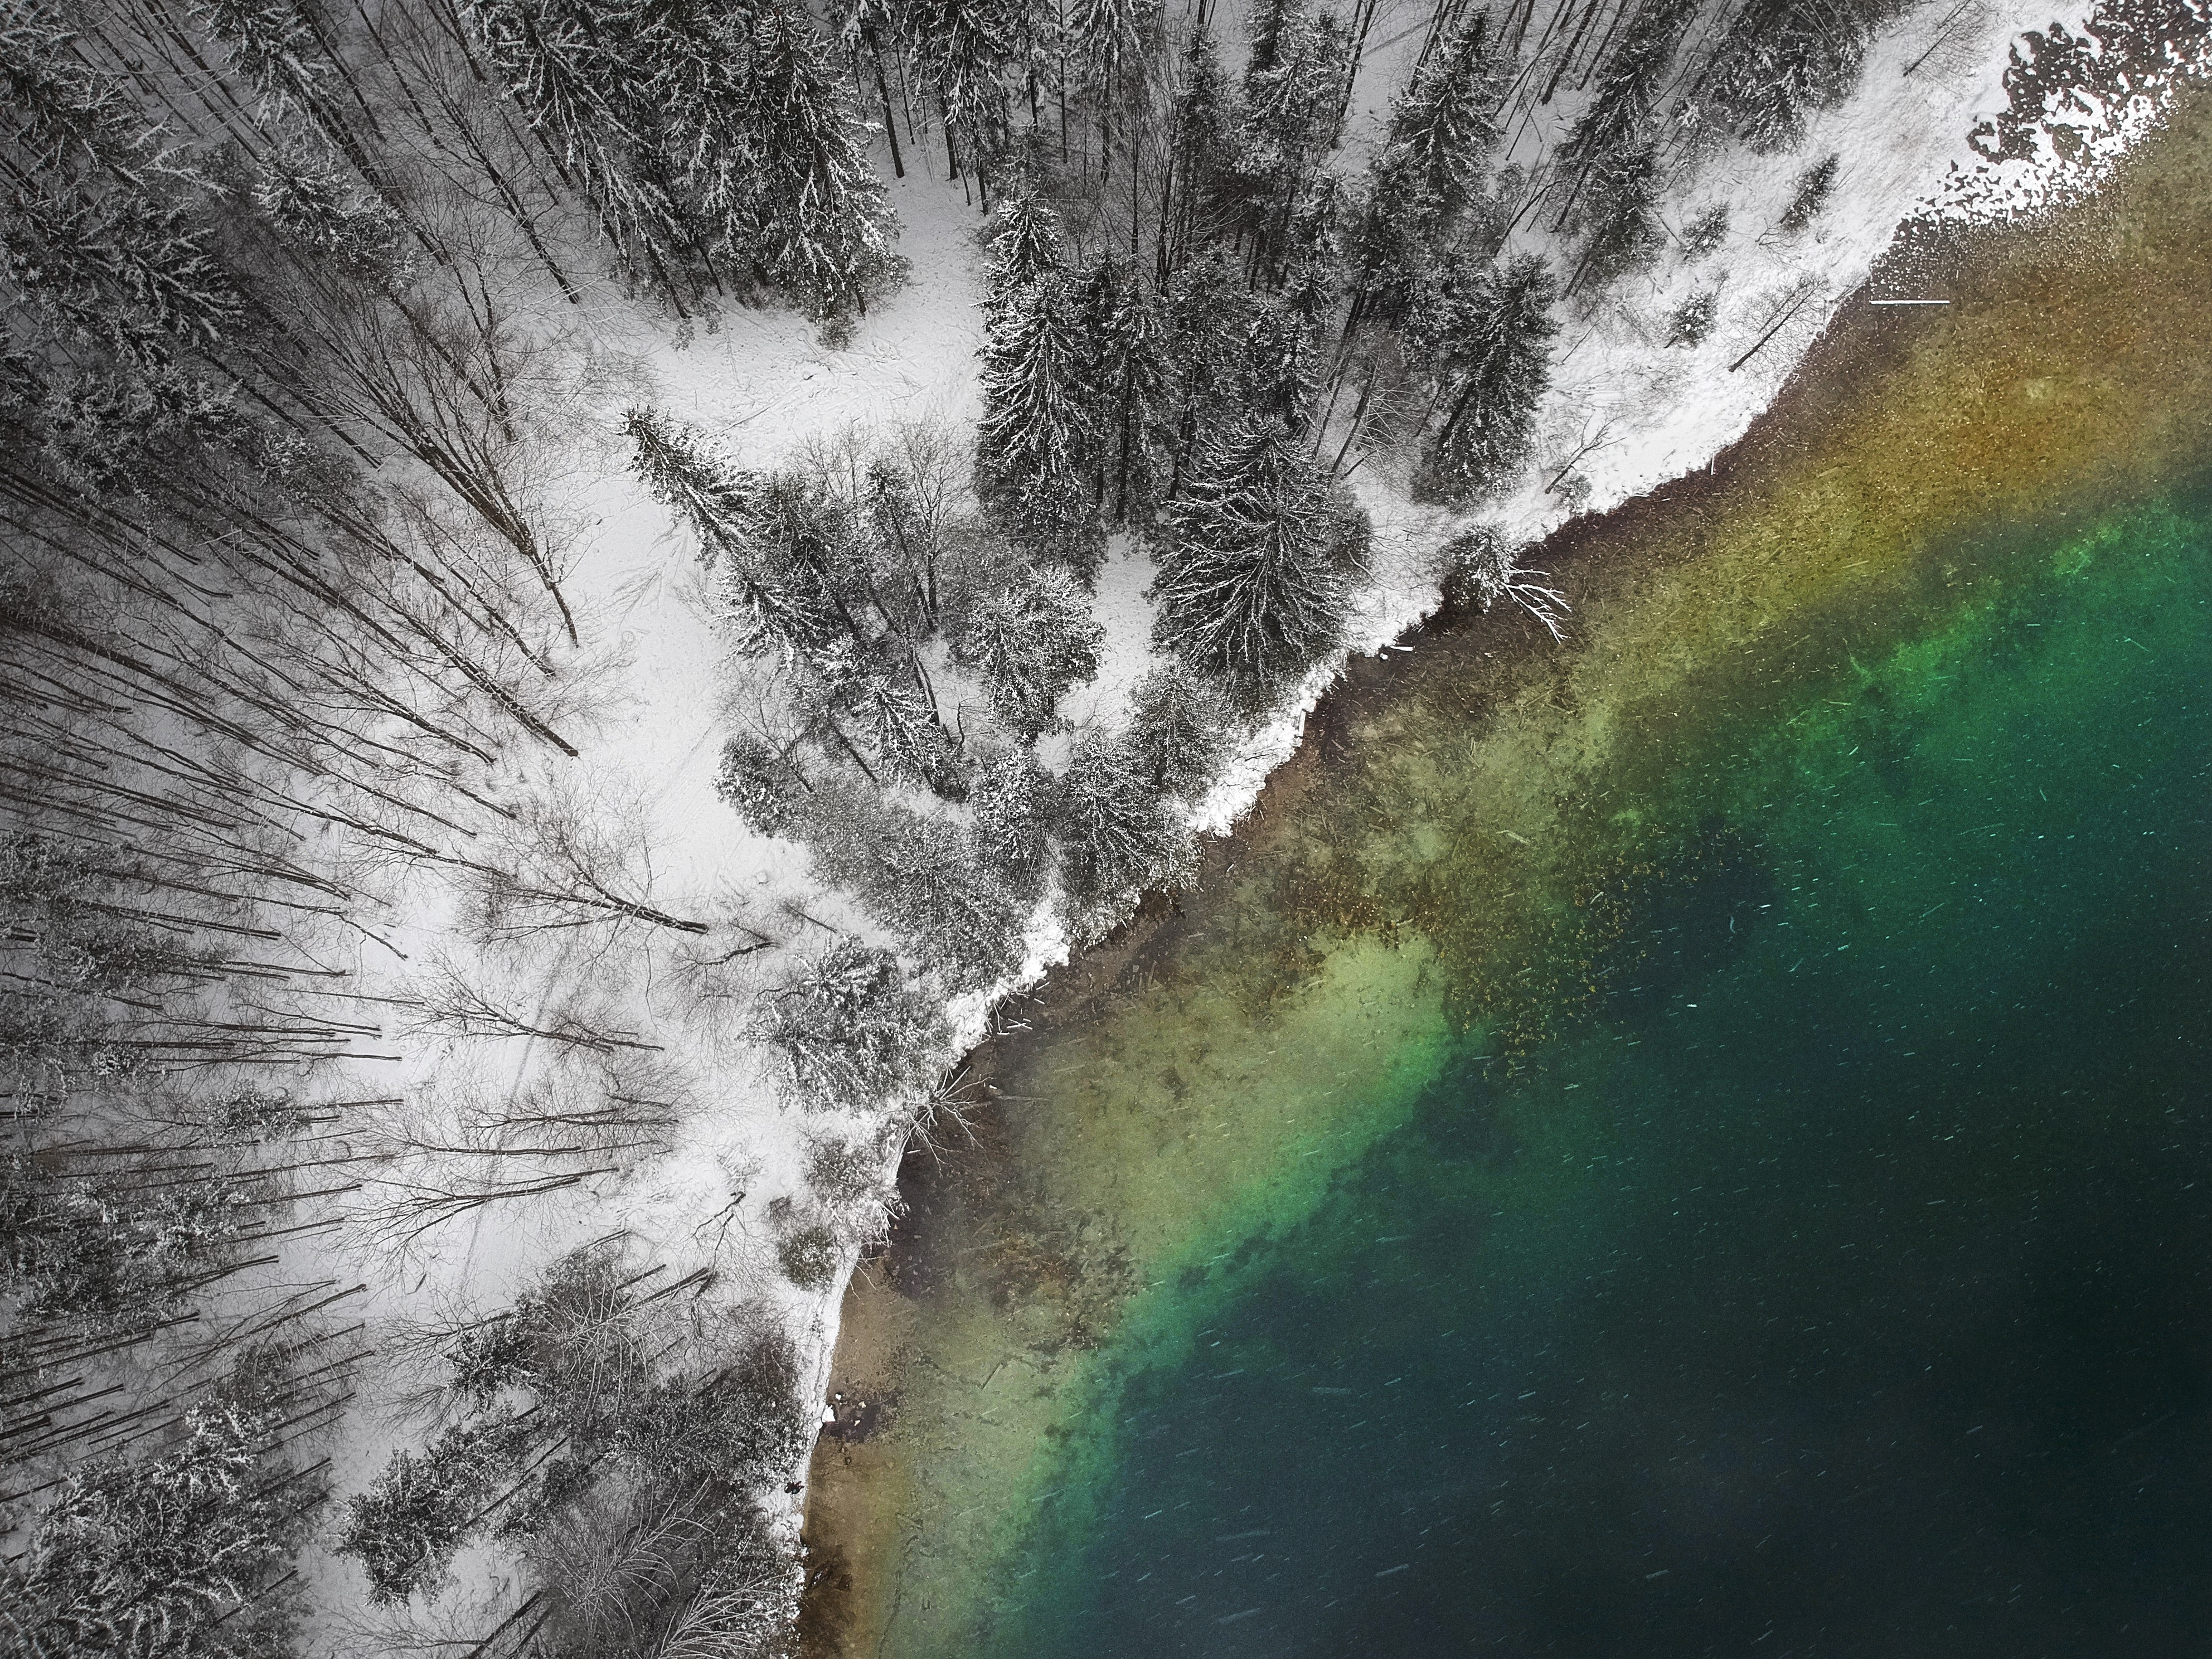 aerial photography of body of water near snow covered trees